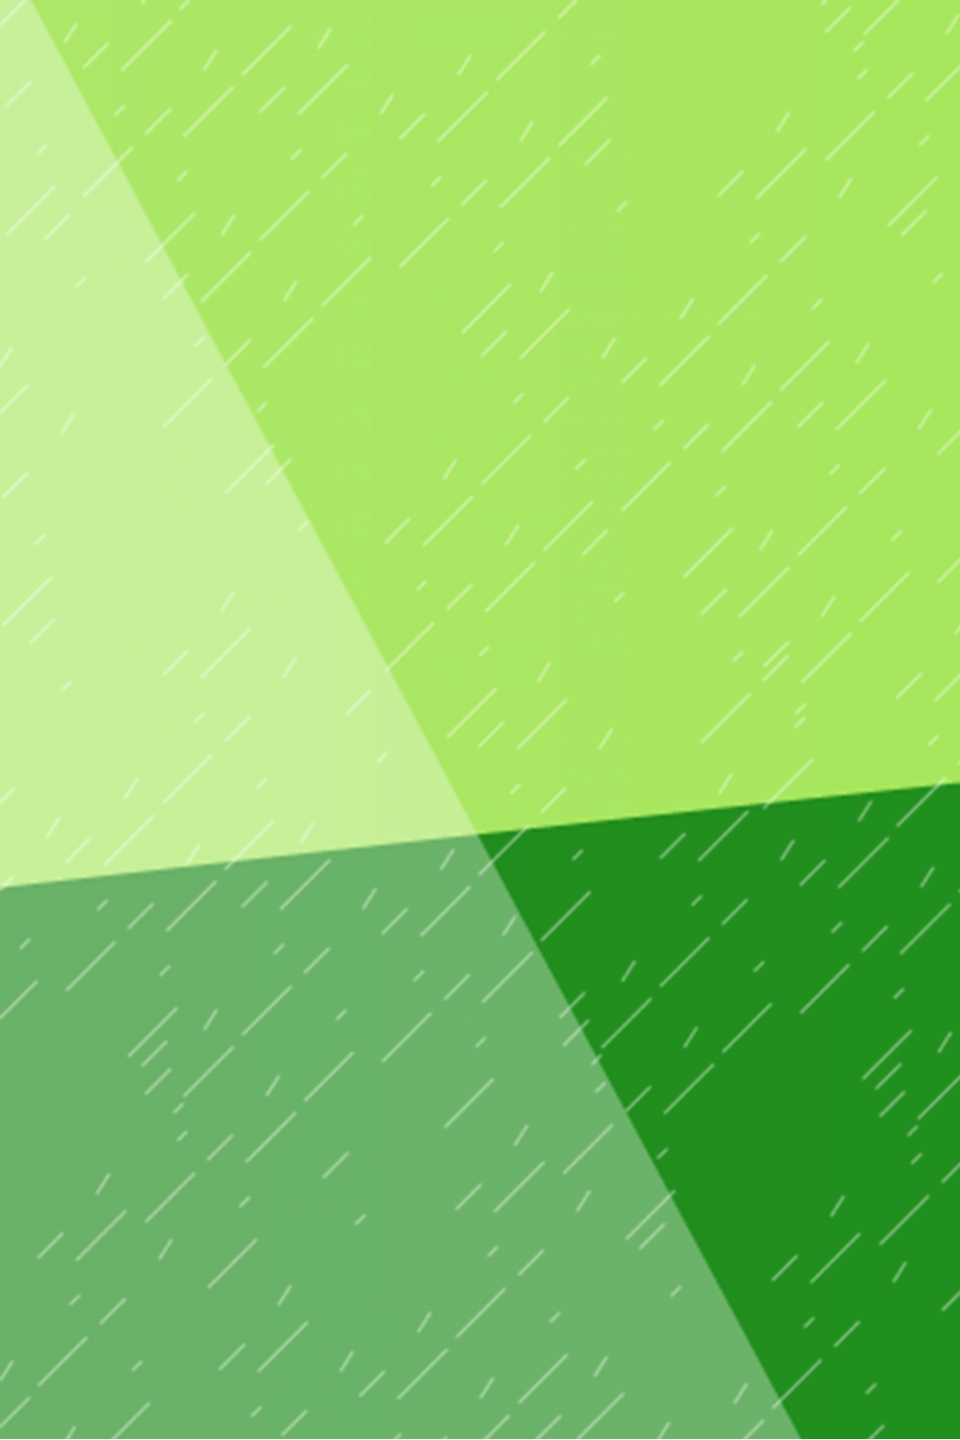 Green Contrast Solid Color Background Solid Color Shading Green Grass Green Dark Green Background Image For Free Download